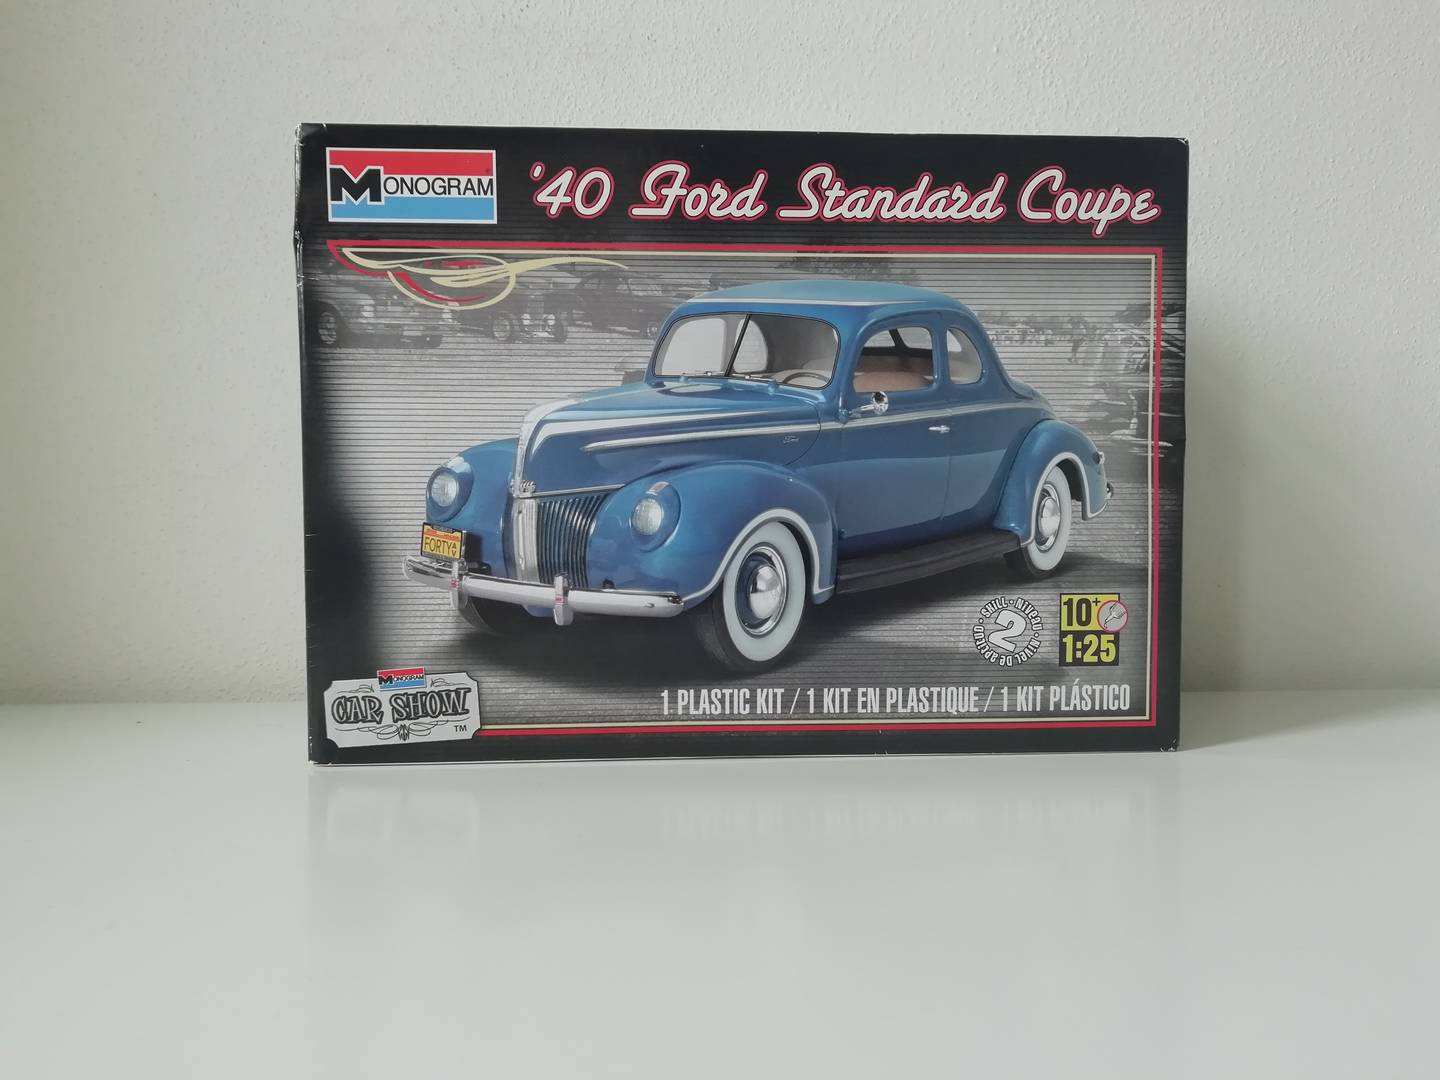 Monogram 40 Ford Standard Coupe